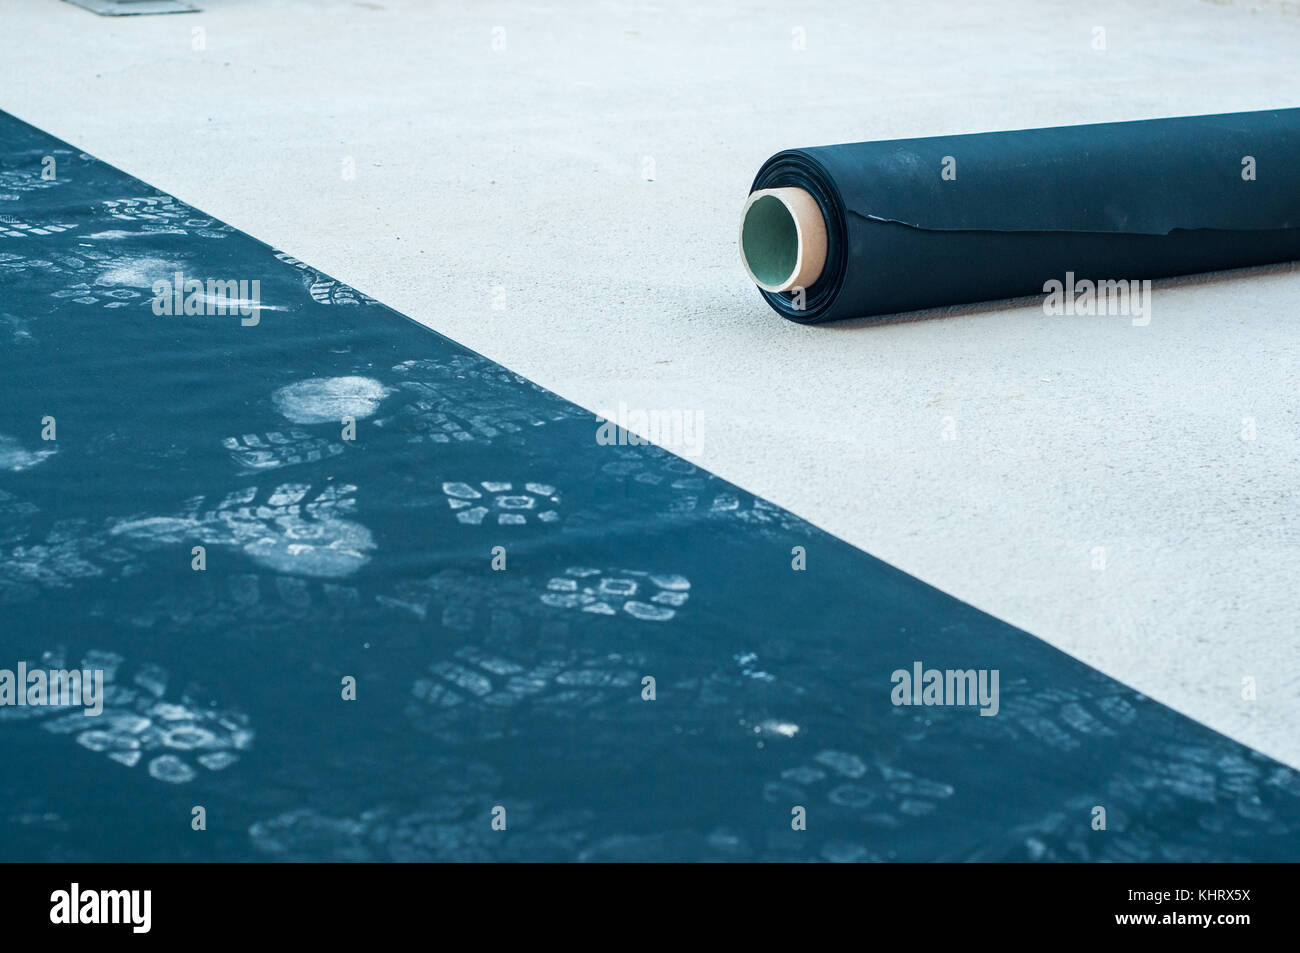 Rubber Floors Stock Photos & Rubber Floors Stock Images - Alamy